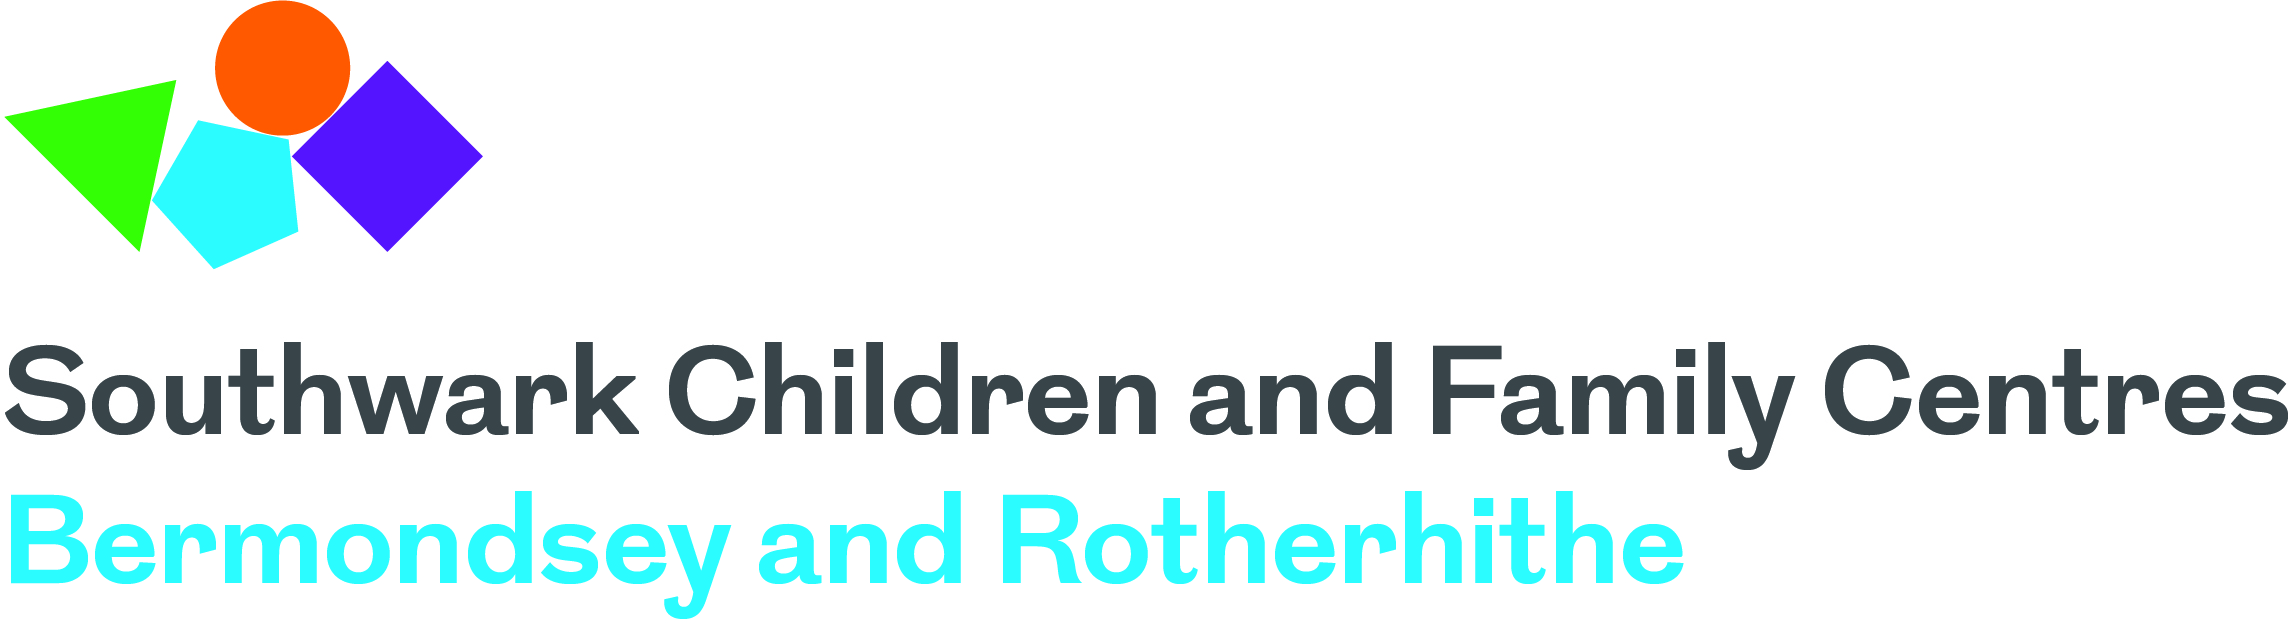 Bermondsey and Rotherhithe Children's Centre